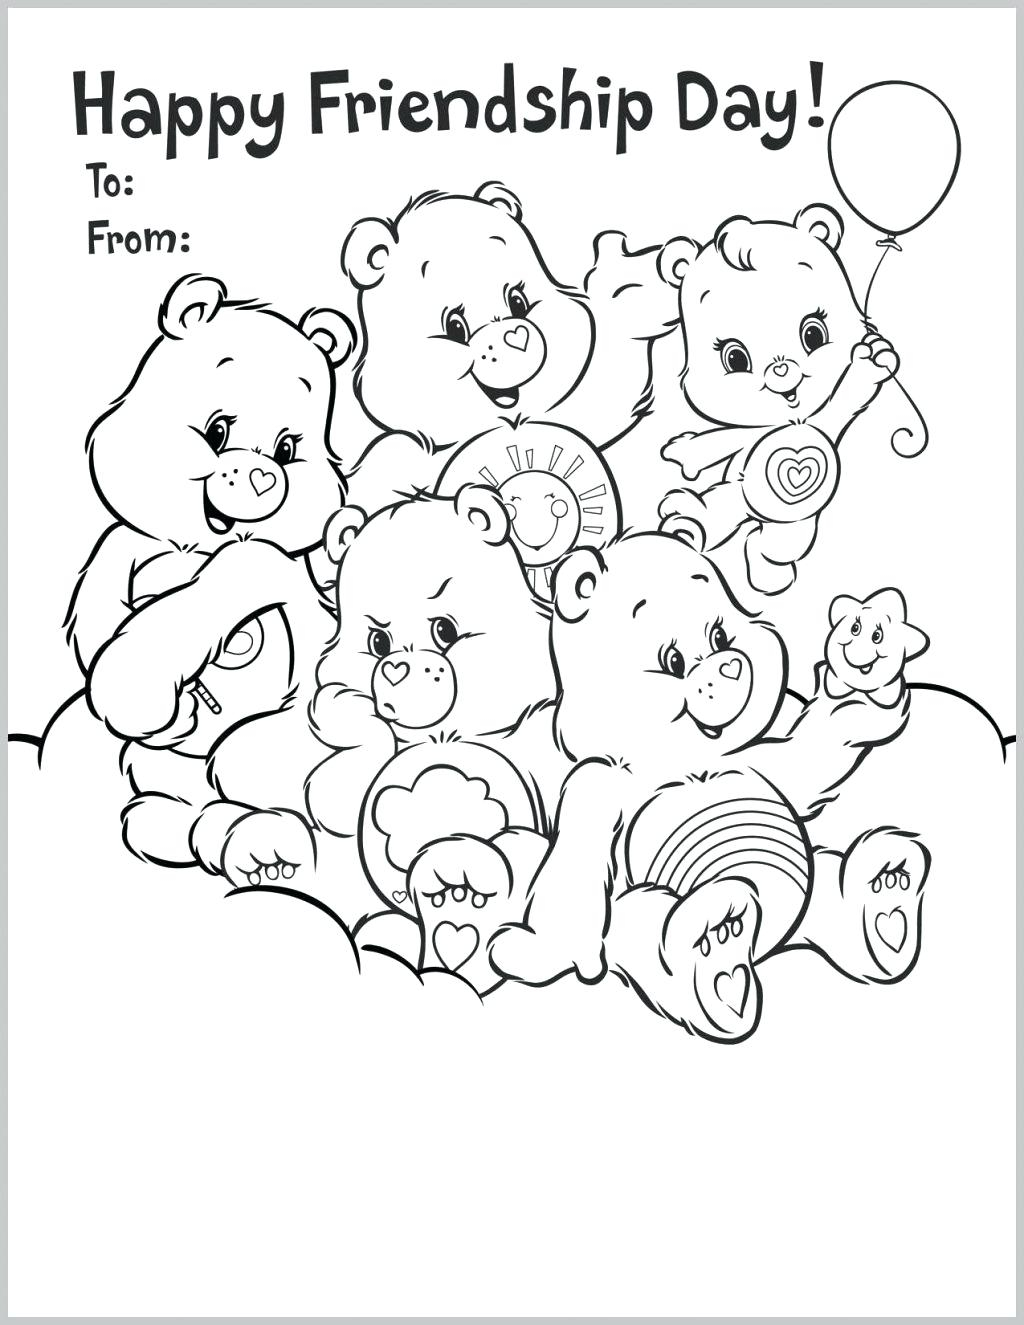 Happy Birthday Coloring Pages For Friends Coloring Pages Of Happy Birthday Drpageco